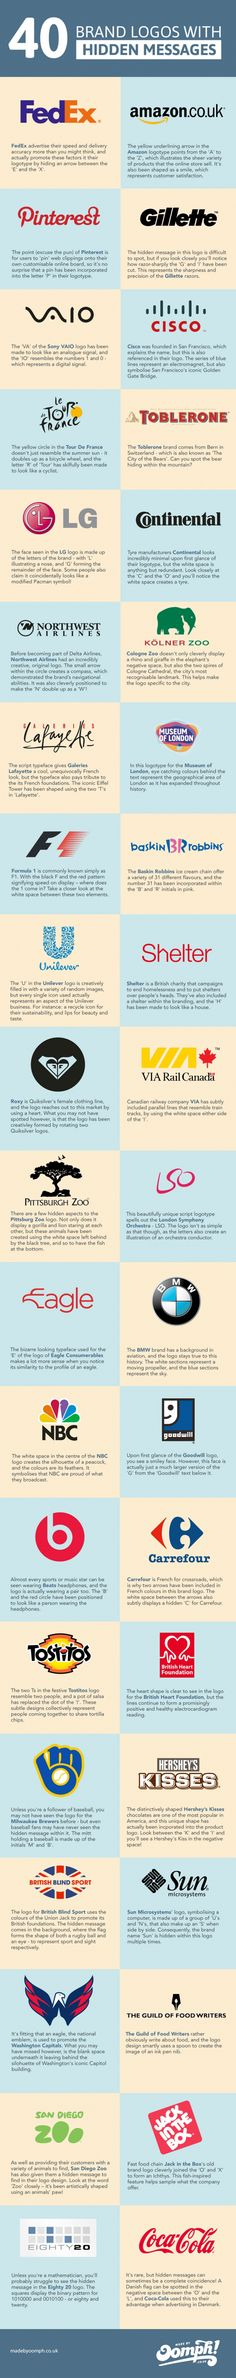 40-logos-with-hidden-messages